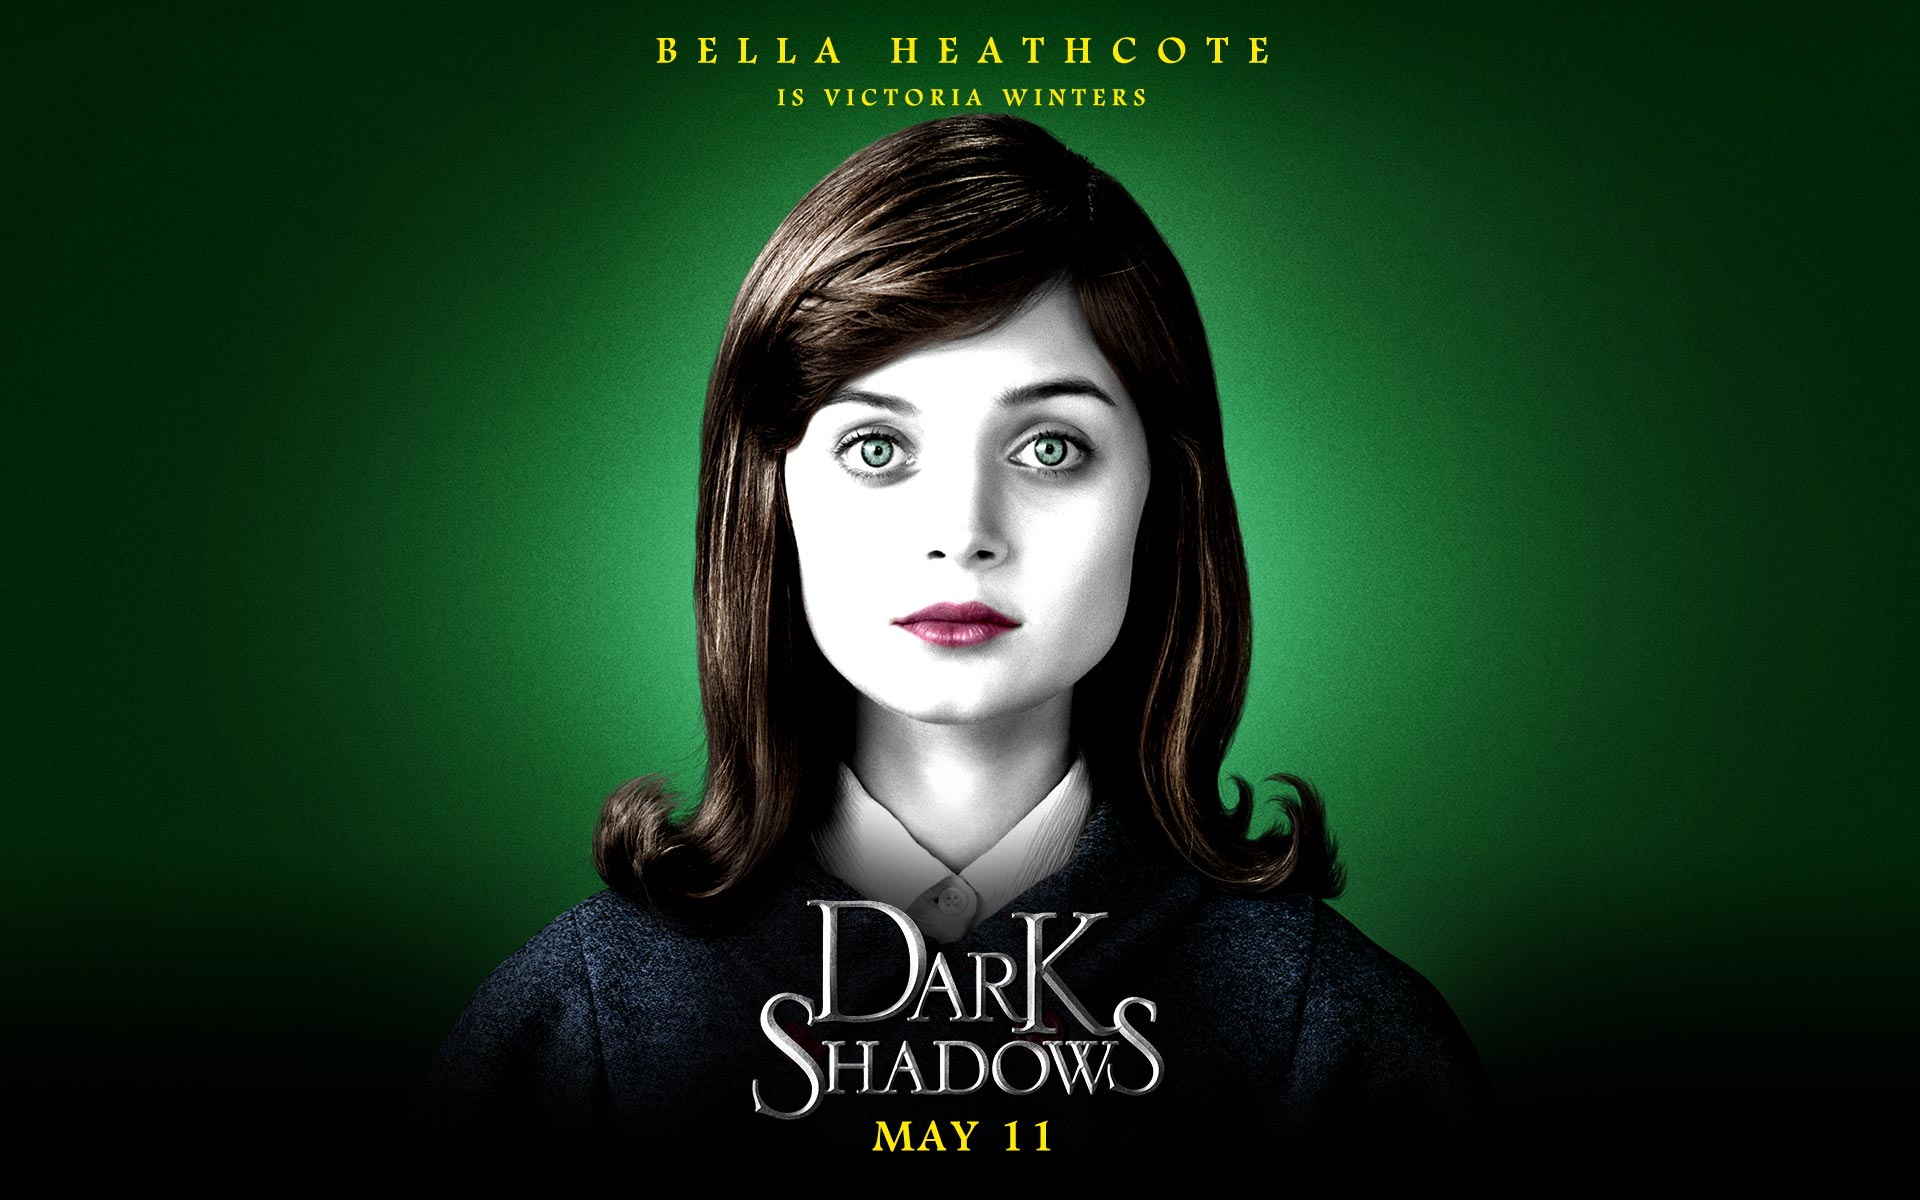 Dark Shadows Wallpapers 1920 x 1200 px 1920x1200